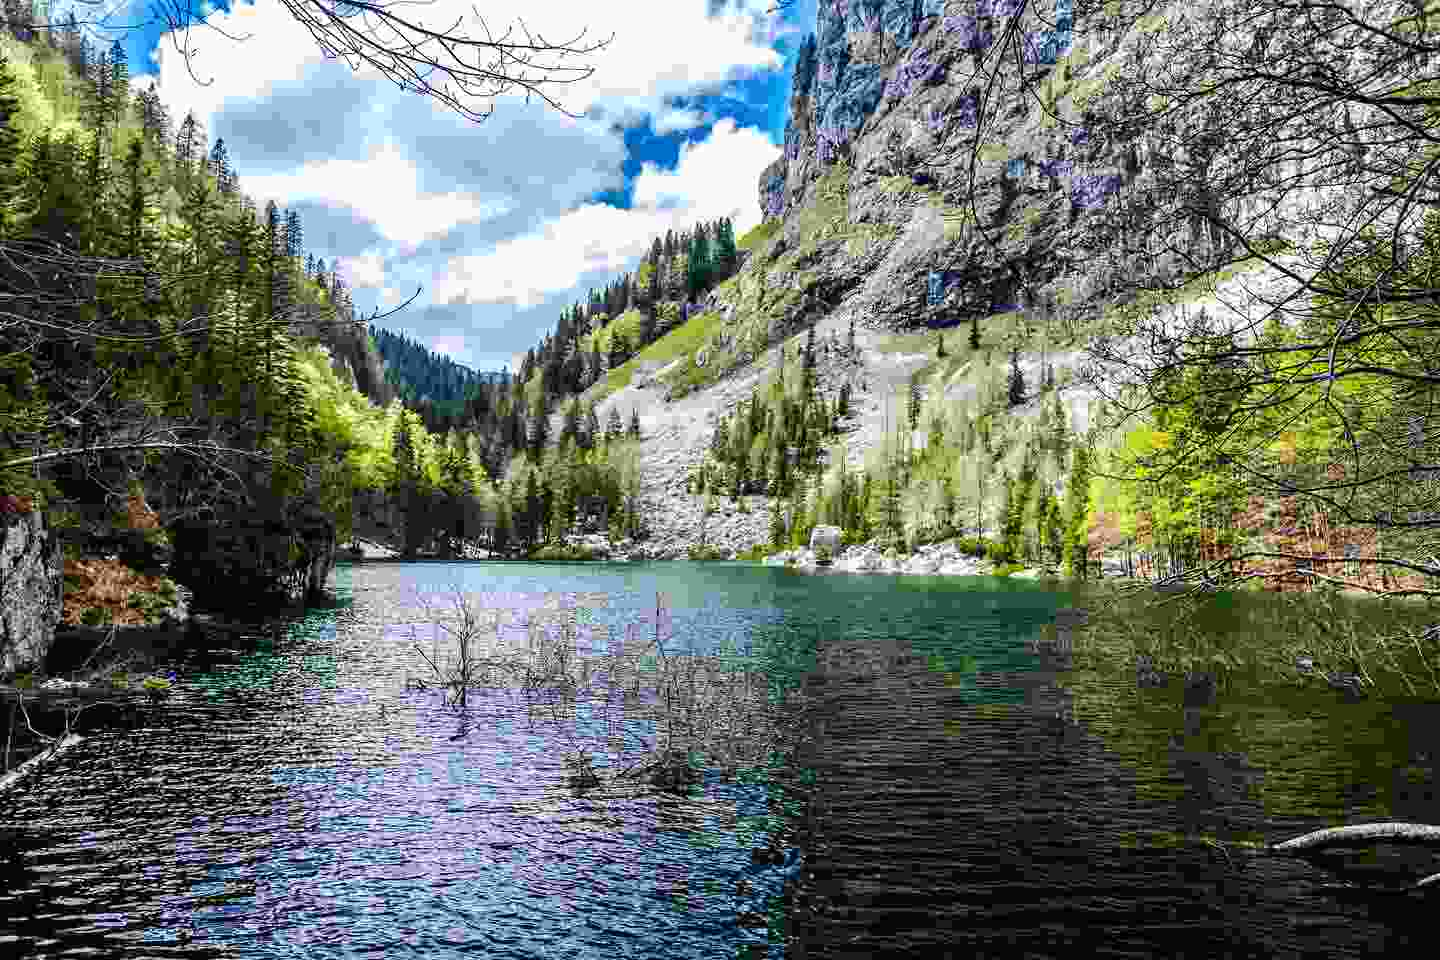 The Black Lake, one of the lowest in the region, in Slovenia (Shutterstock)